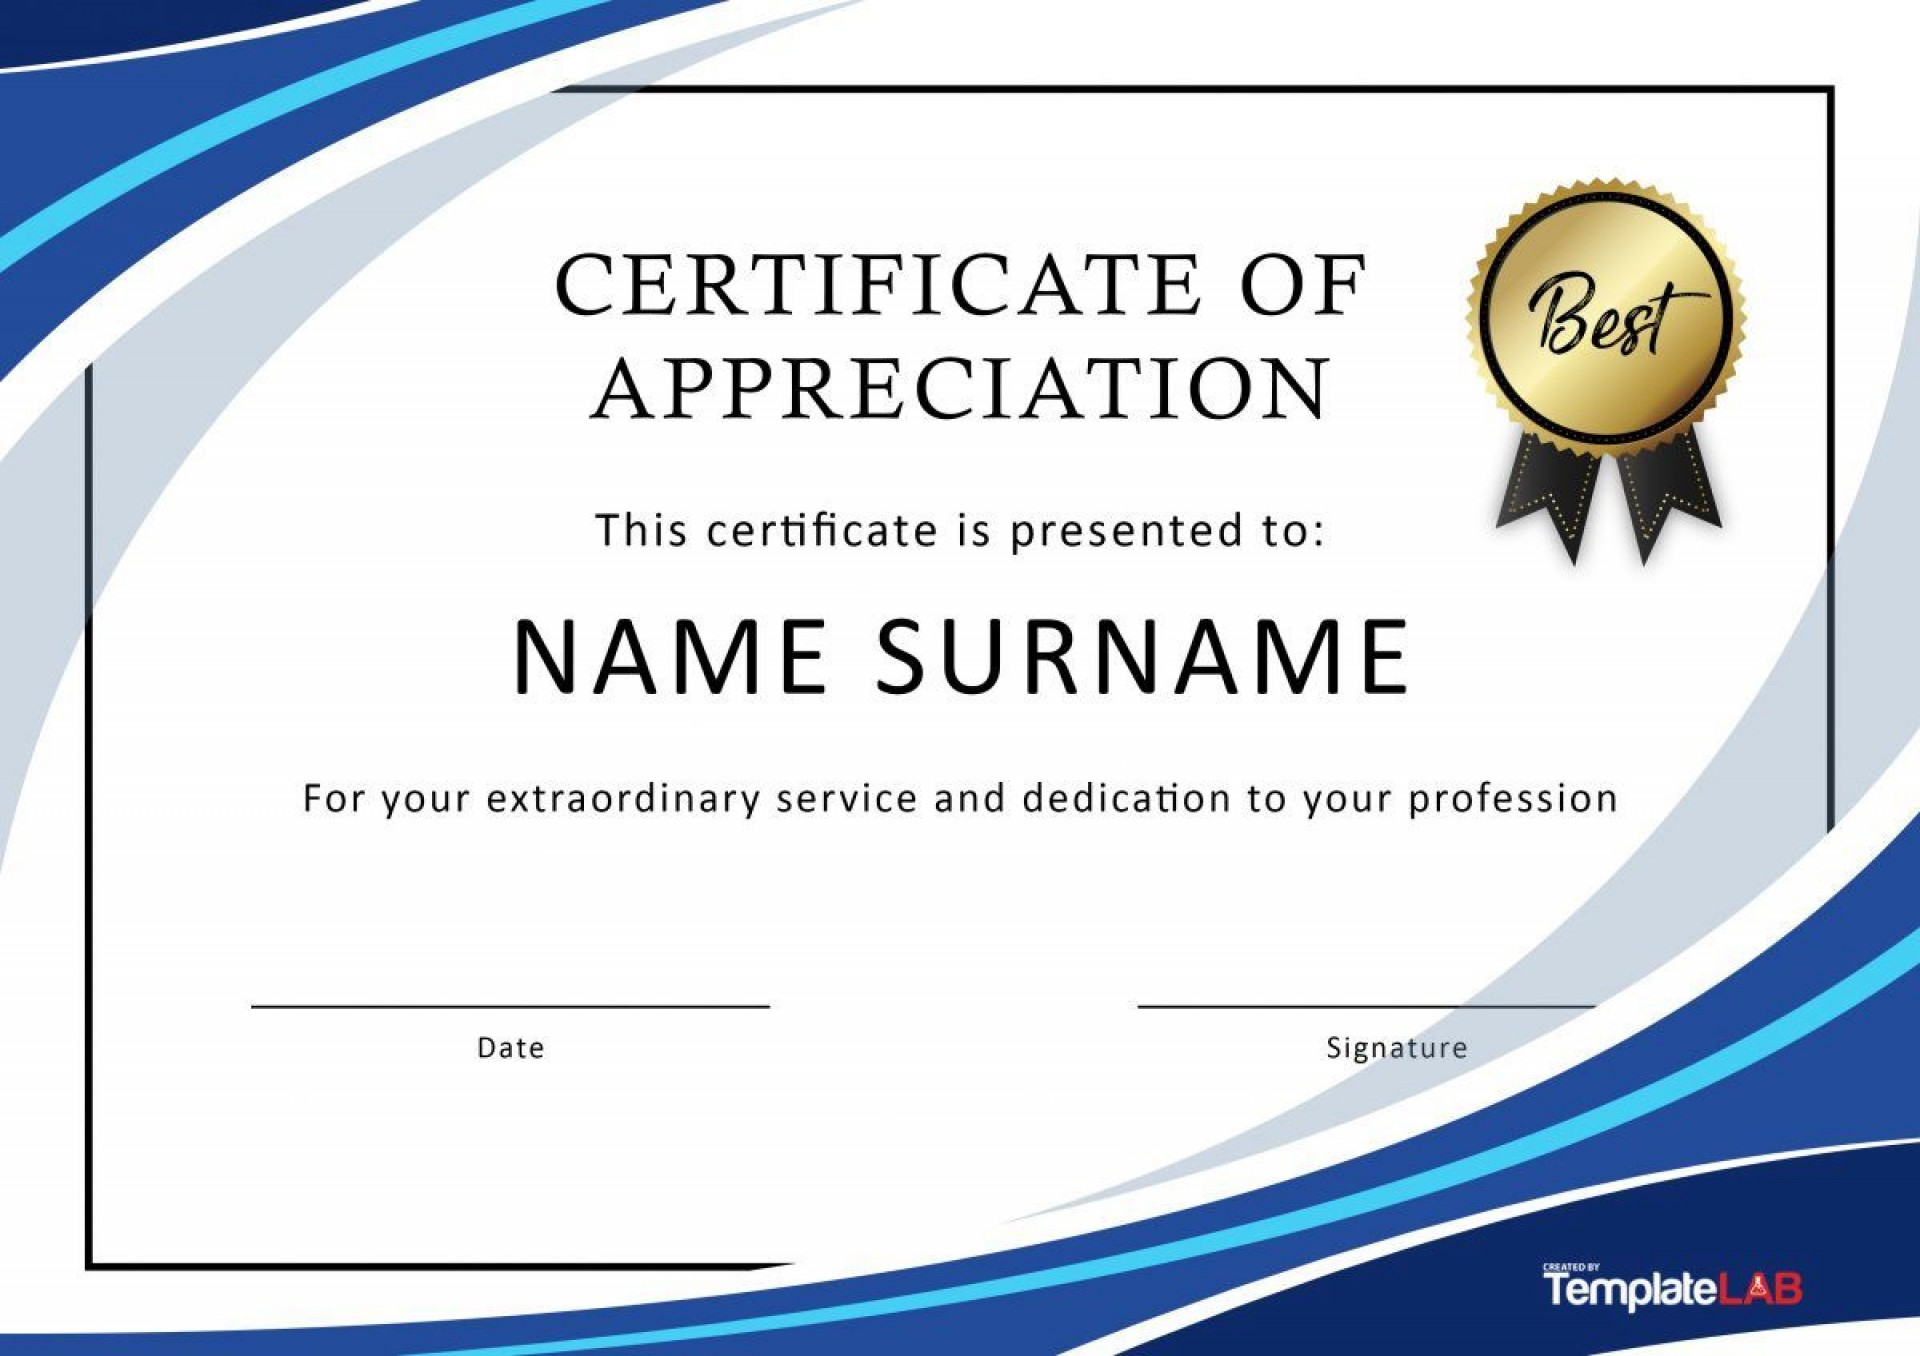 004 Outstanding Free Certificate Template Word Download Concept  Of Appreciation Doc Award Border1920